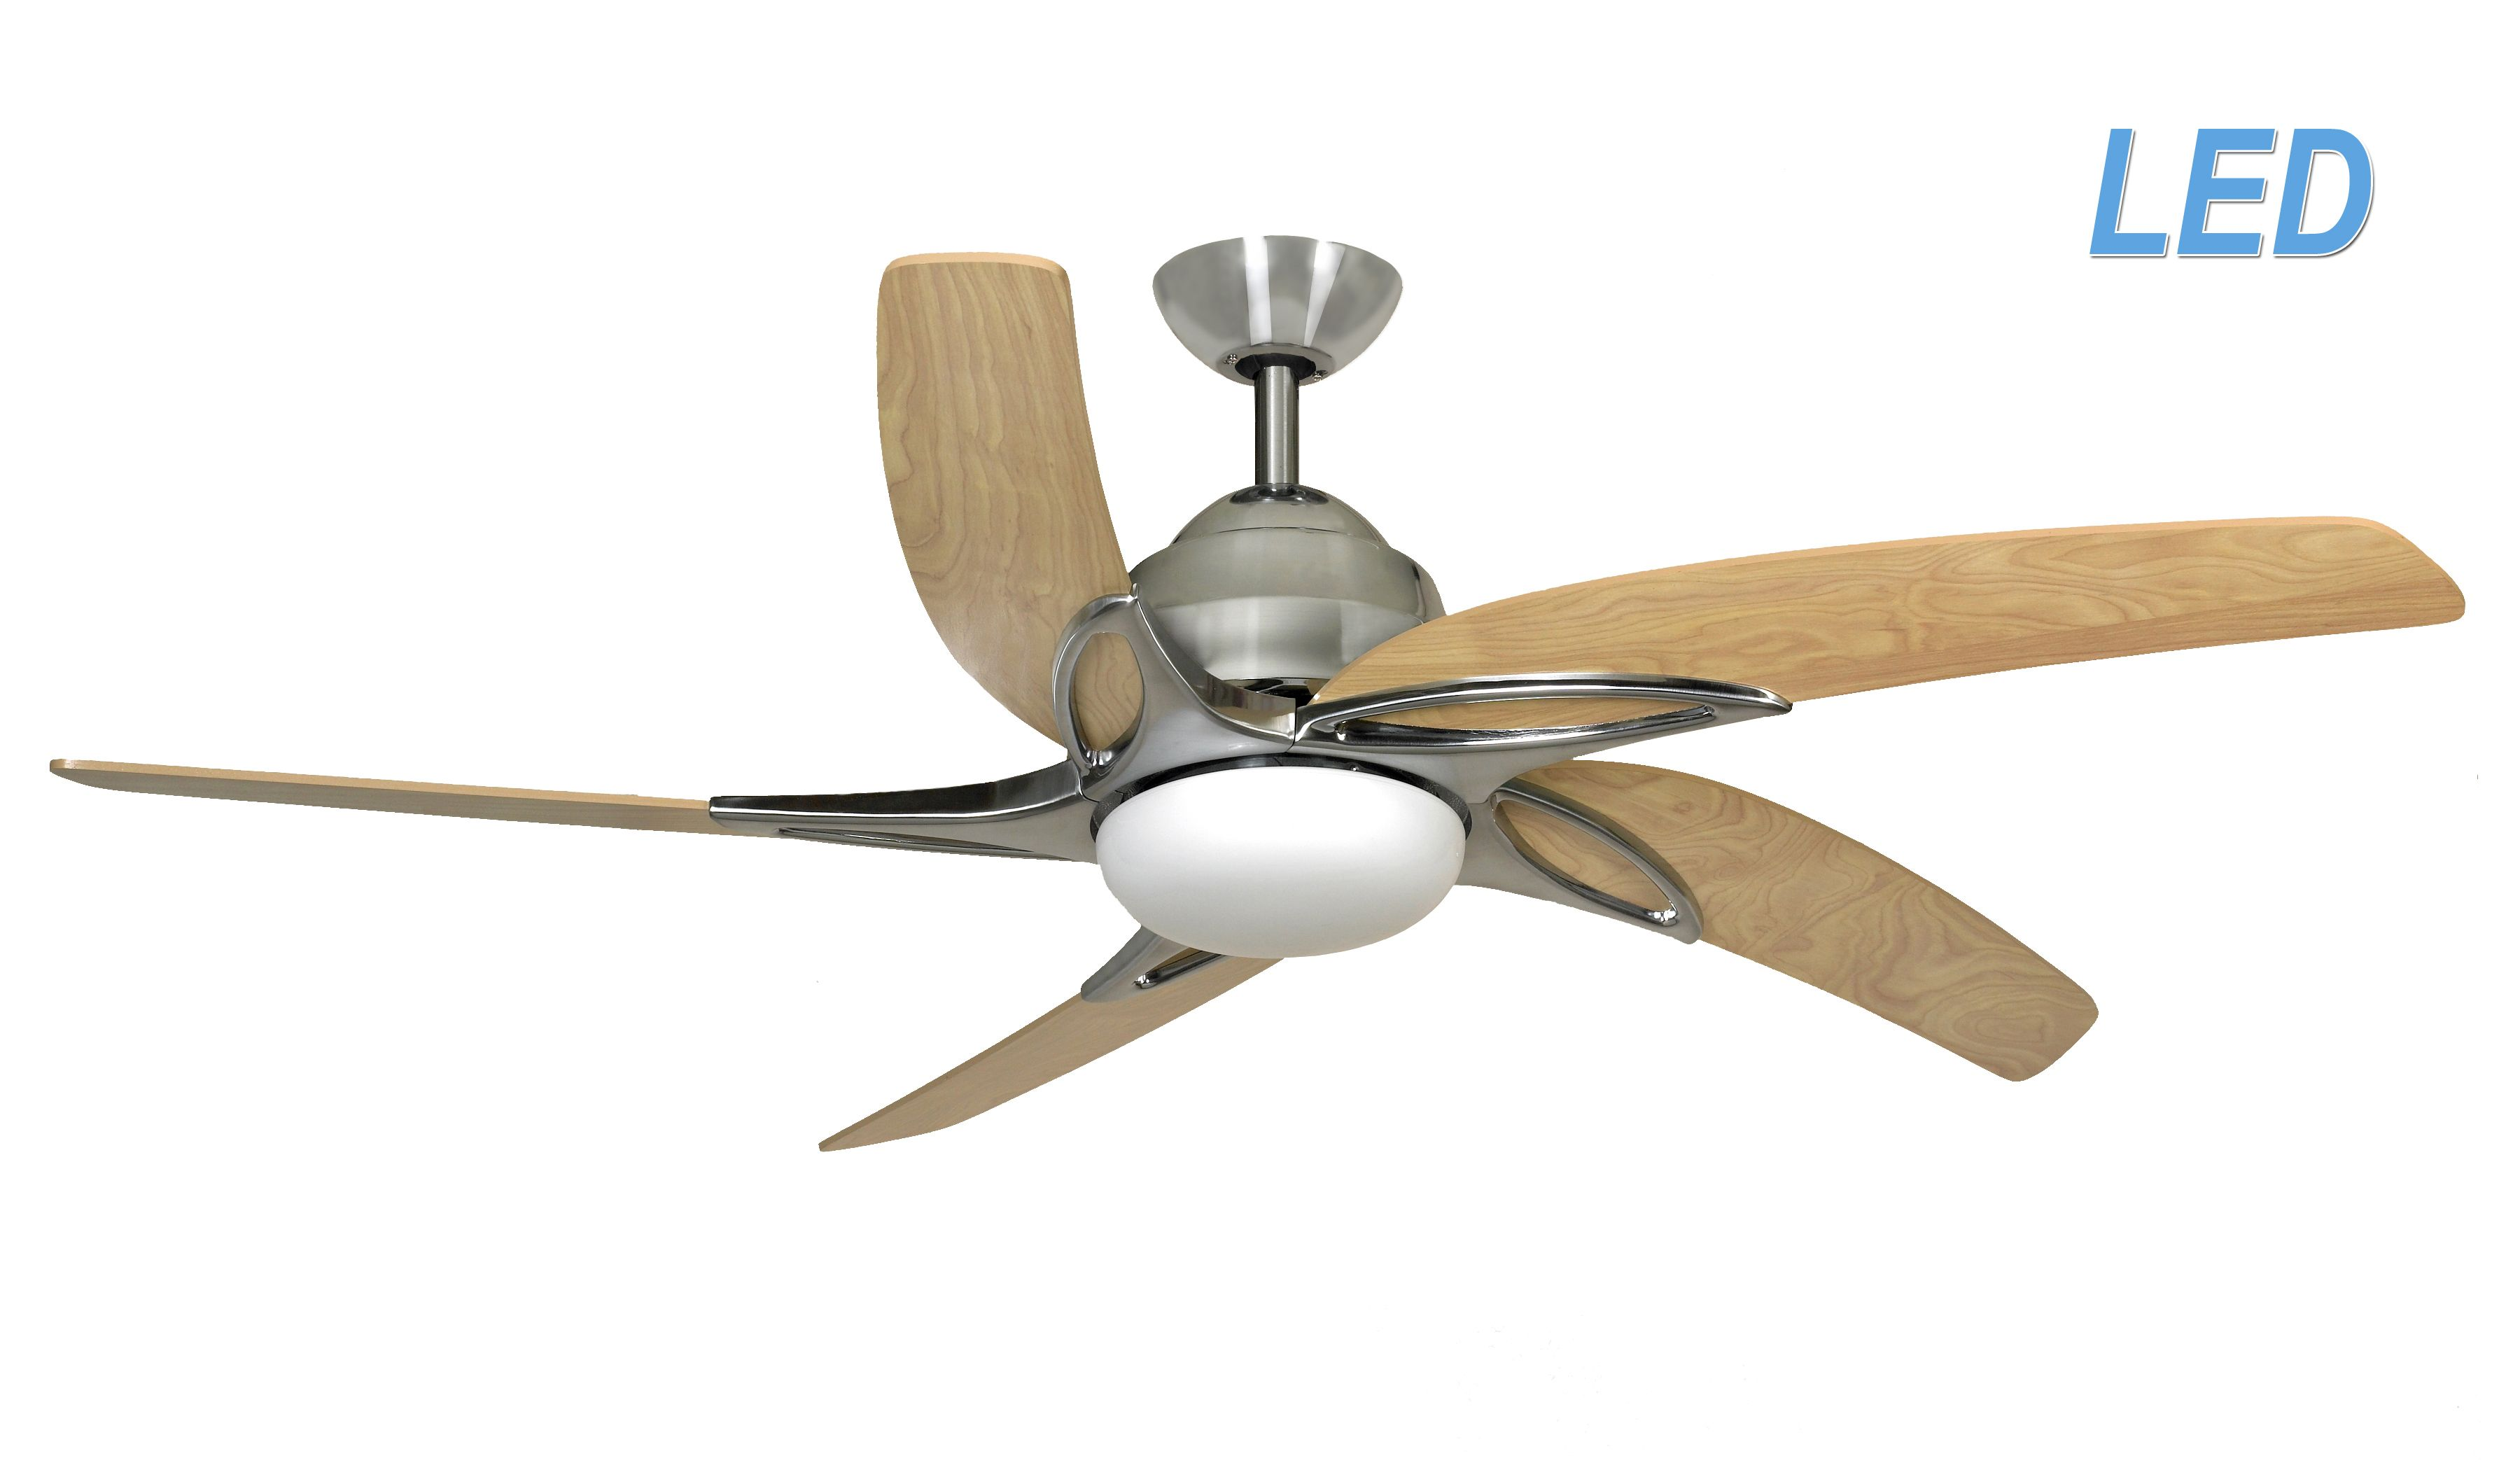 Fantasia Viper 44 Stainless Steel Ceiling Fan Remote